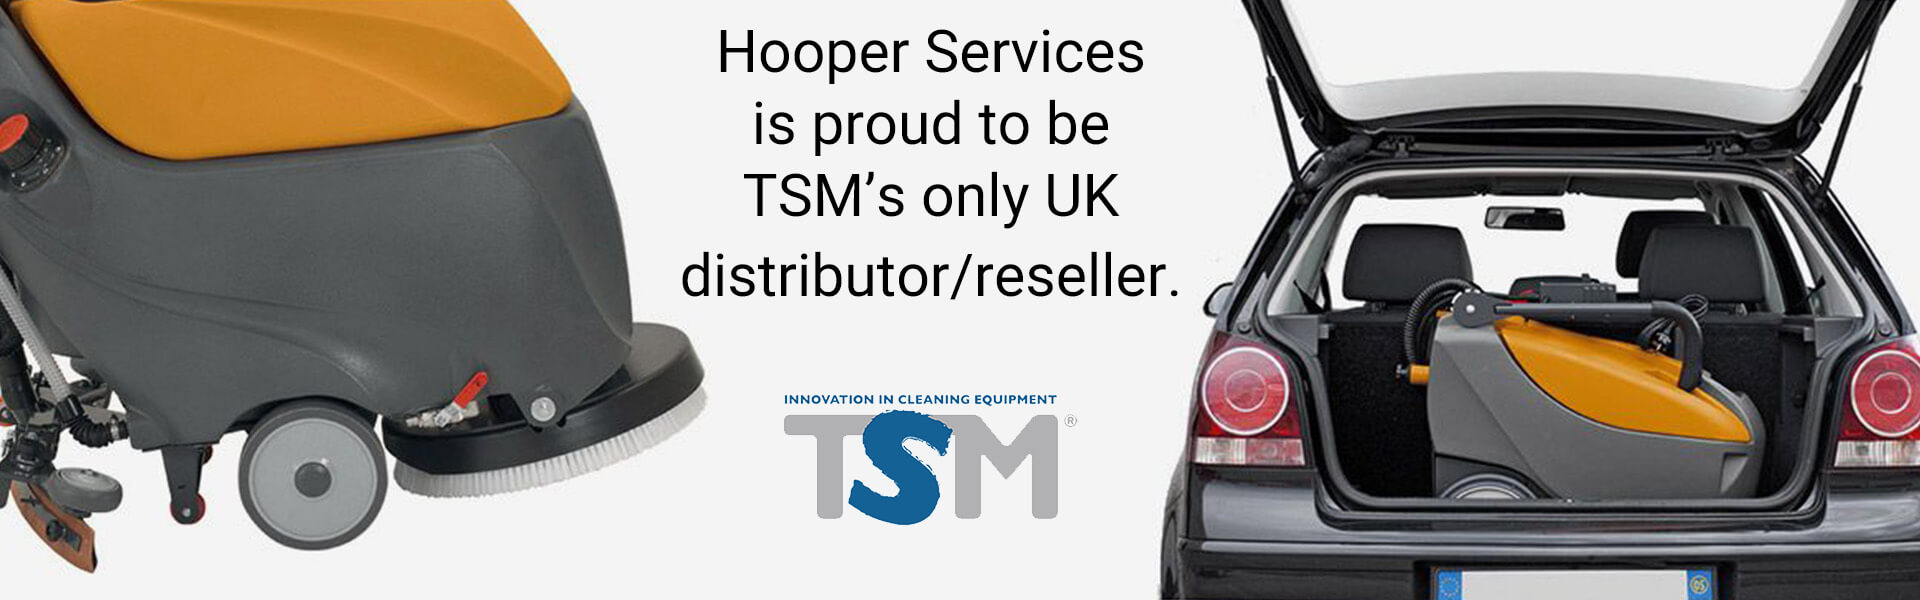 Hooper Services - TSM Distributor Maintenance Service Repair - Hampshire Portsmouth Southampton